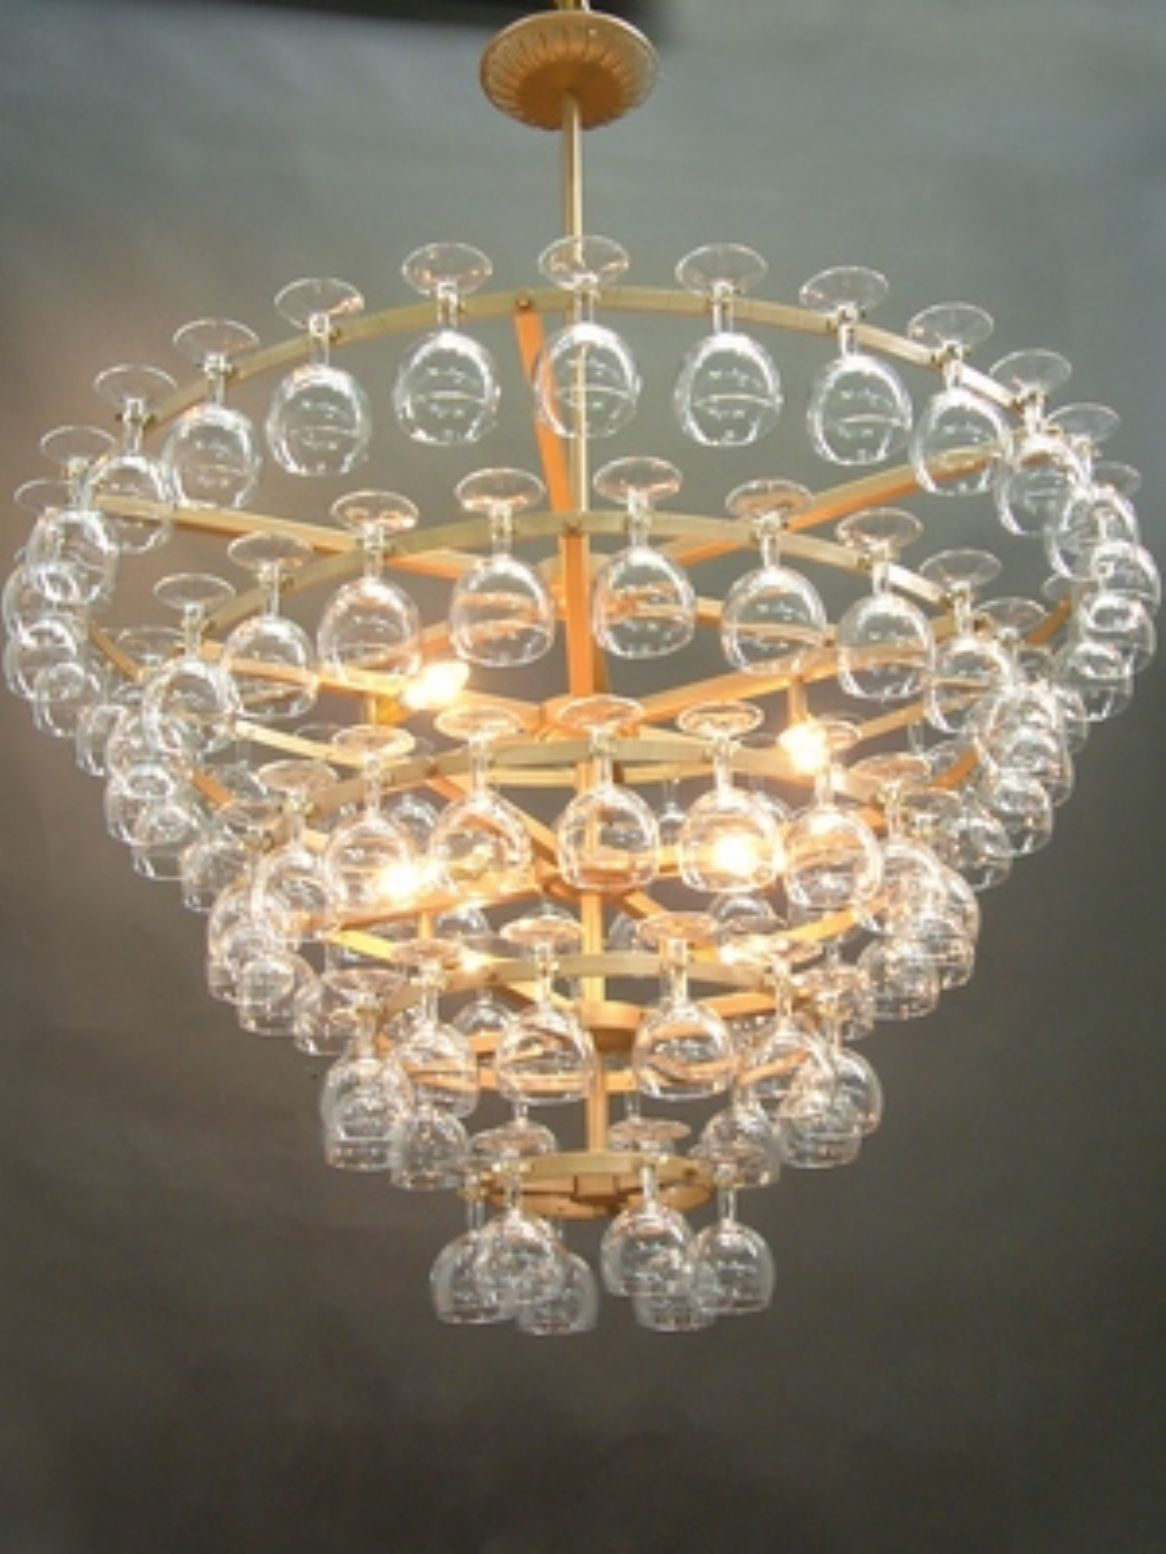 Large wine glass chandelier with brass effect for the home large wine glass chandelier with brass effect arubaitofo Choice Image